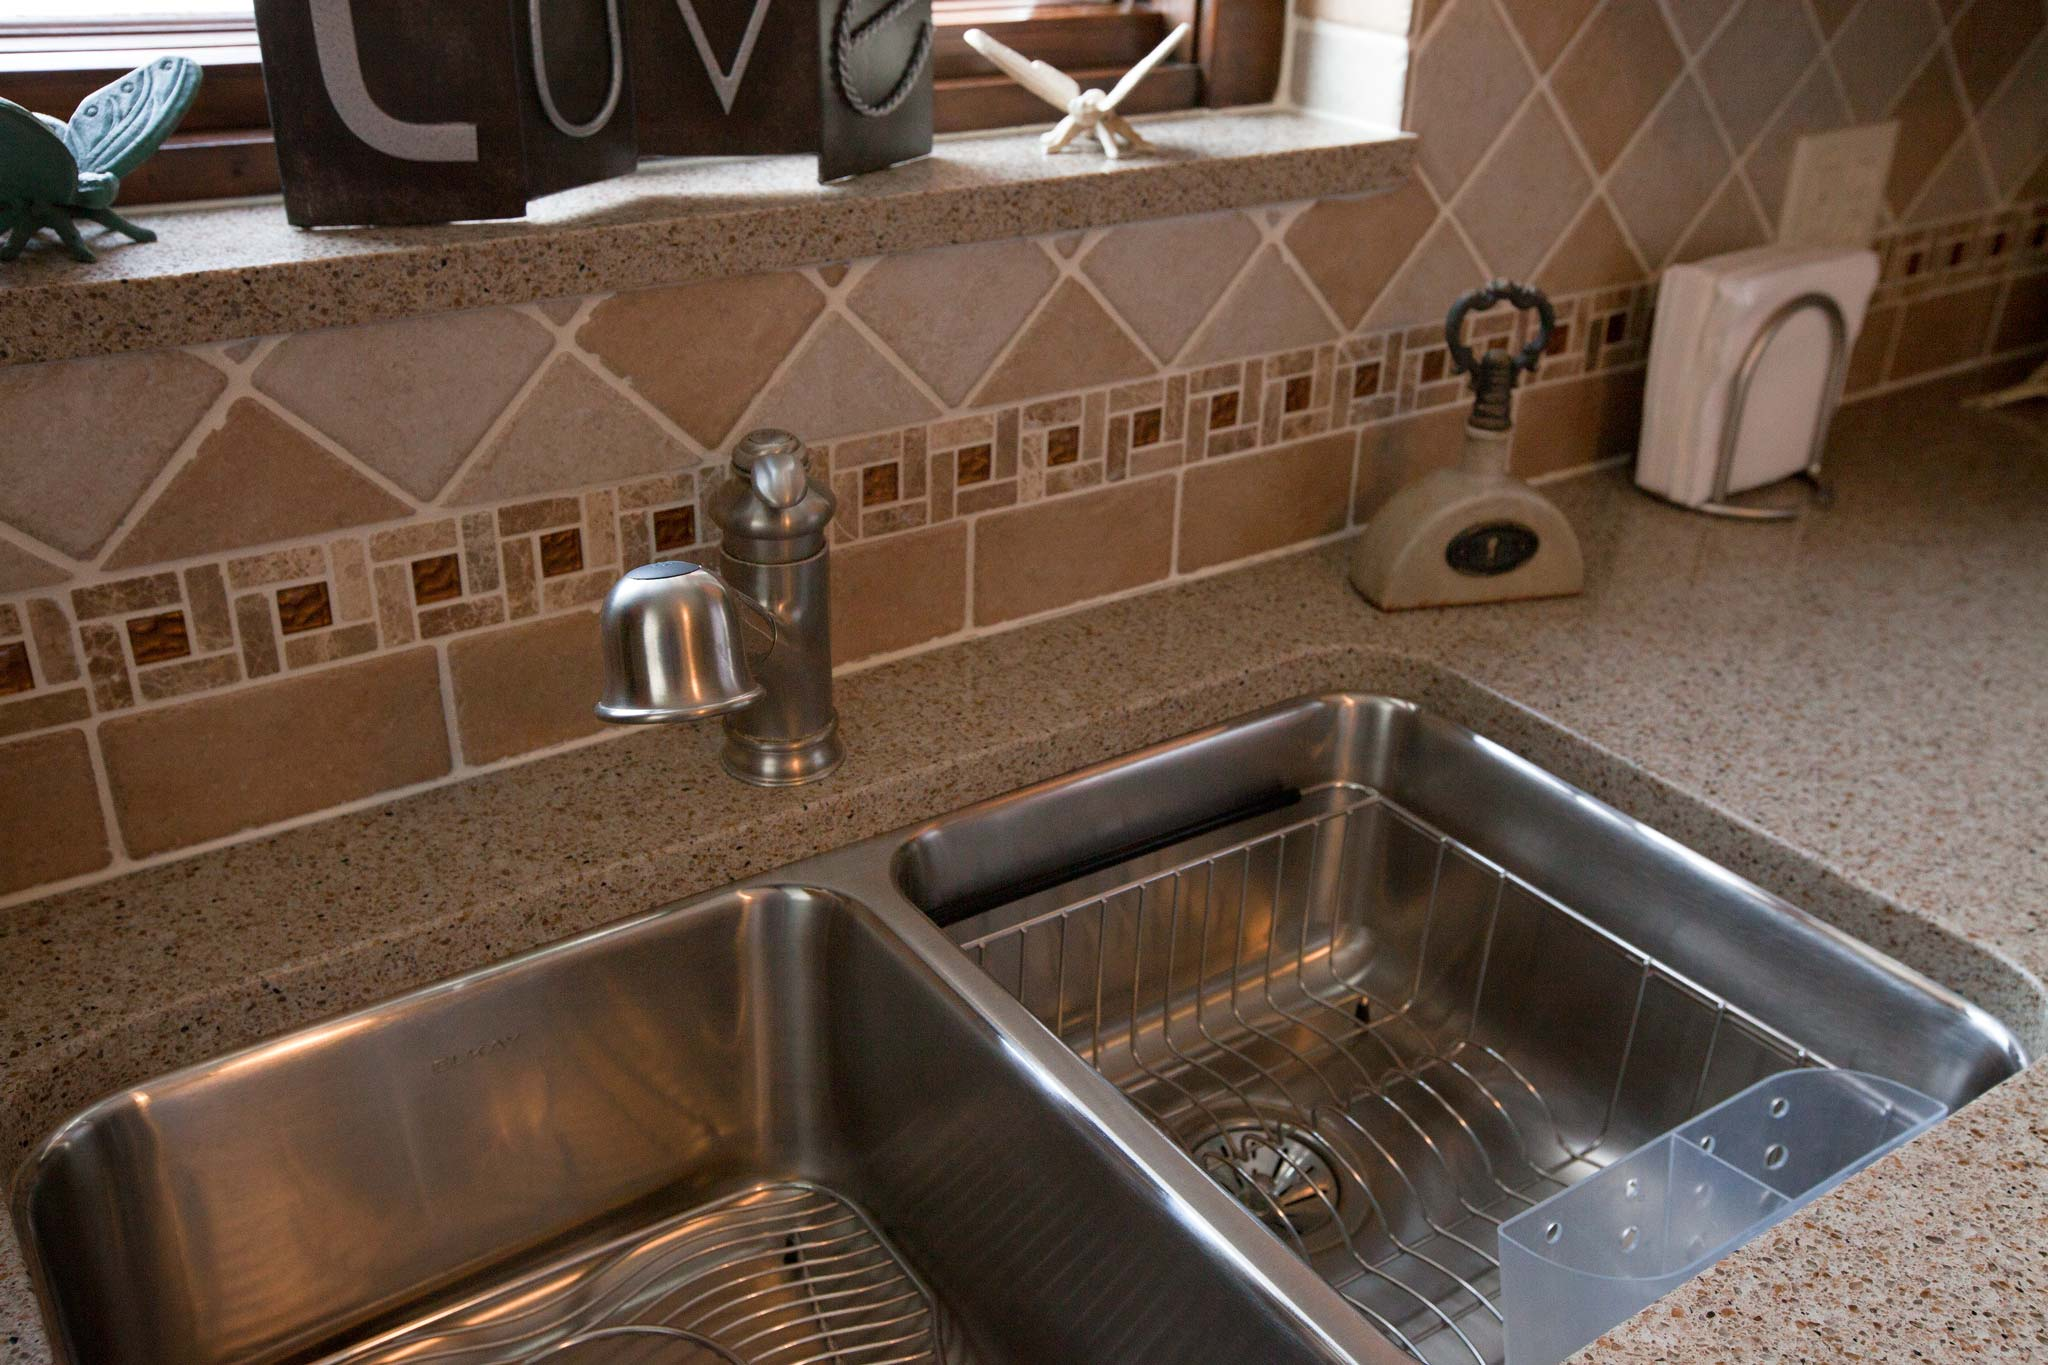 small kitchen elmwood park kitchen remodel costs OVERVIEW